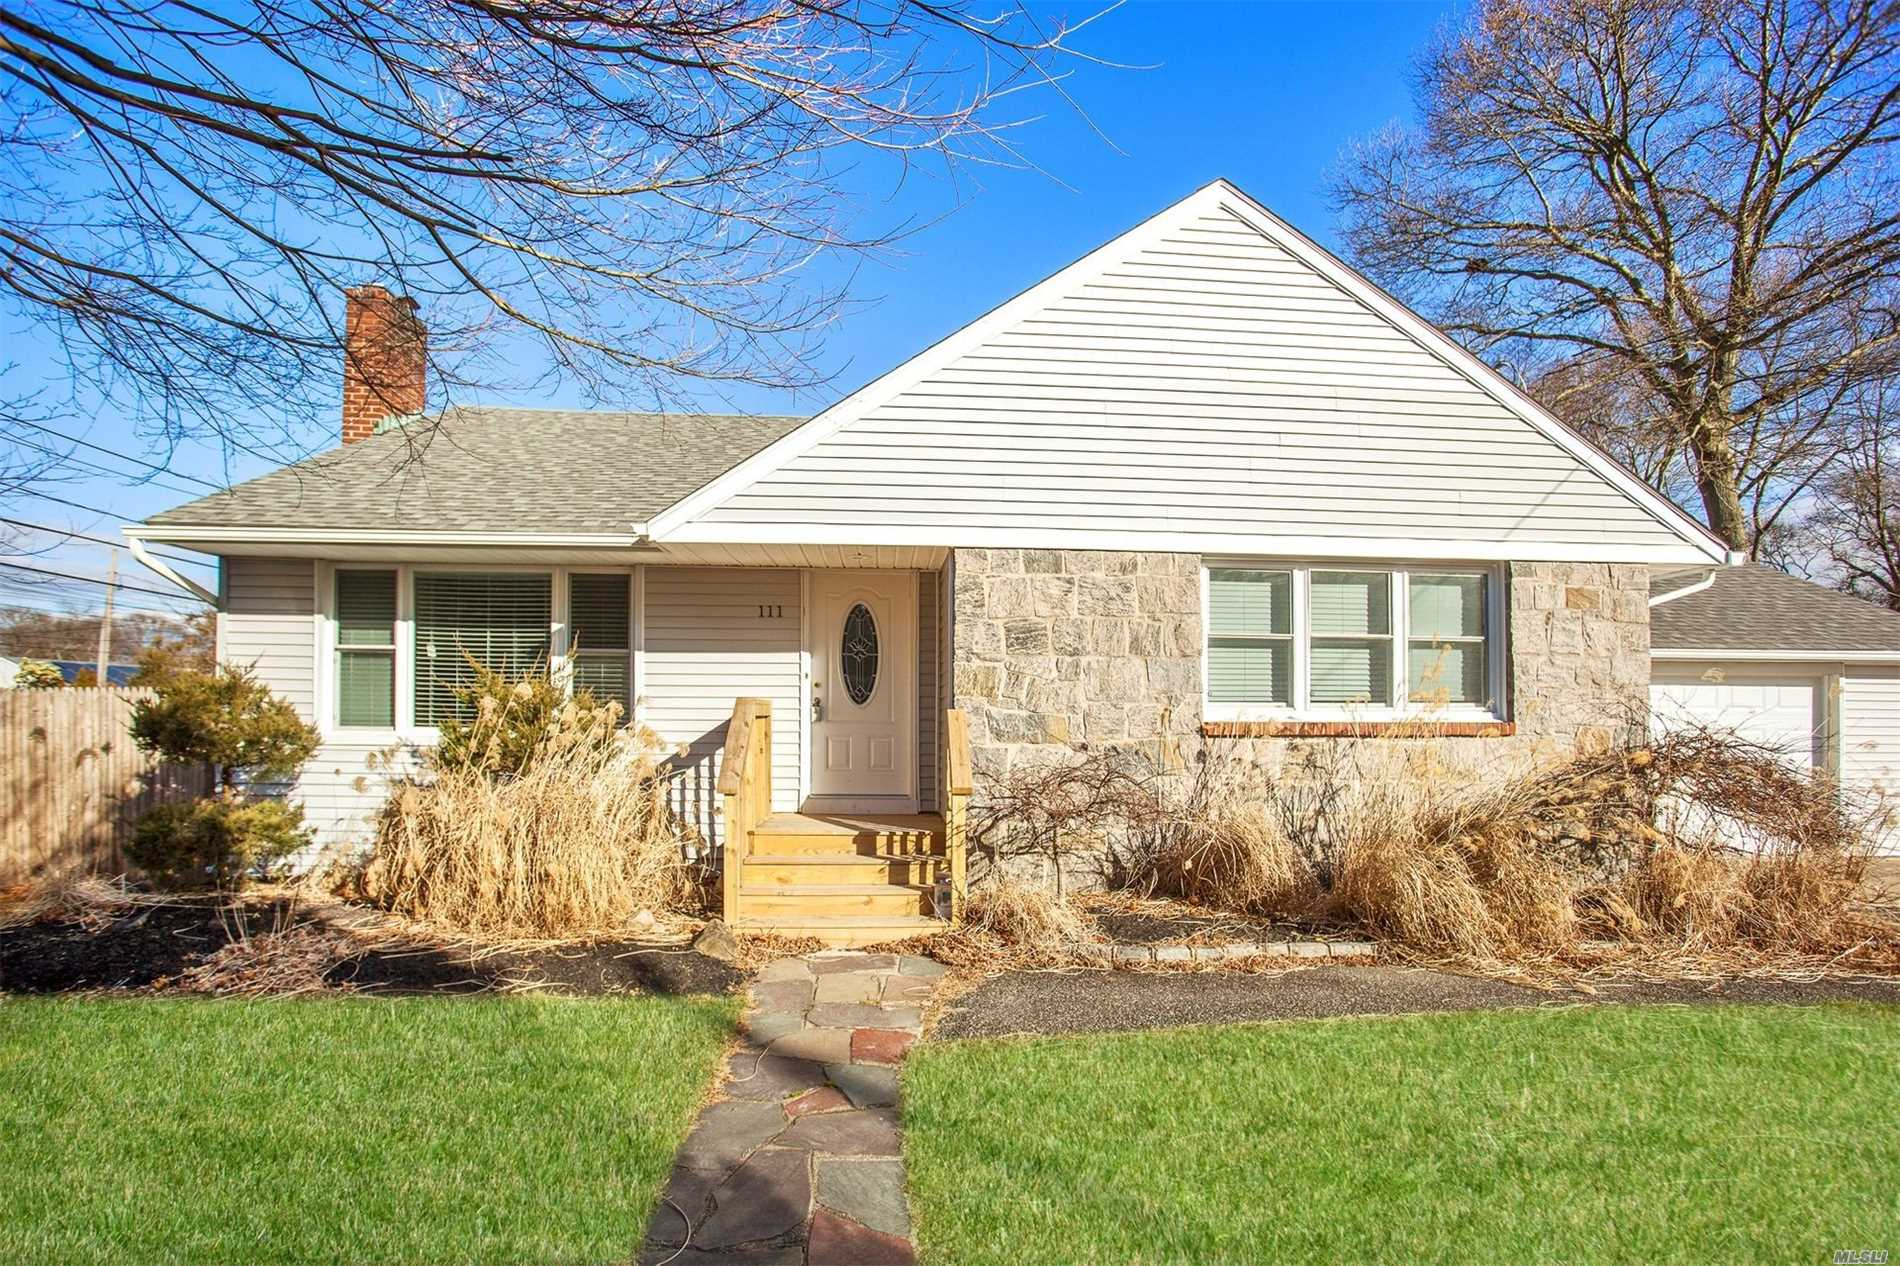 Move Right In To Lovely Renovated Ranch Home Set On A Generous Lot! Ss Appliances, Wood Floors, Pull Down Attic, Full Basement & A 1.5 Car Garage For Ample Storage! Enjoy Lovely Lake Ronkonkoma Just Down The Street. So Much Country-Like Living To Experience In Suffolk County So Don''t Let This One Get Away!